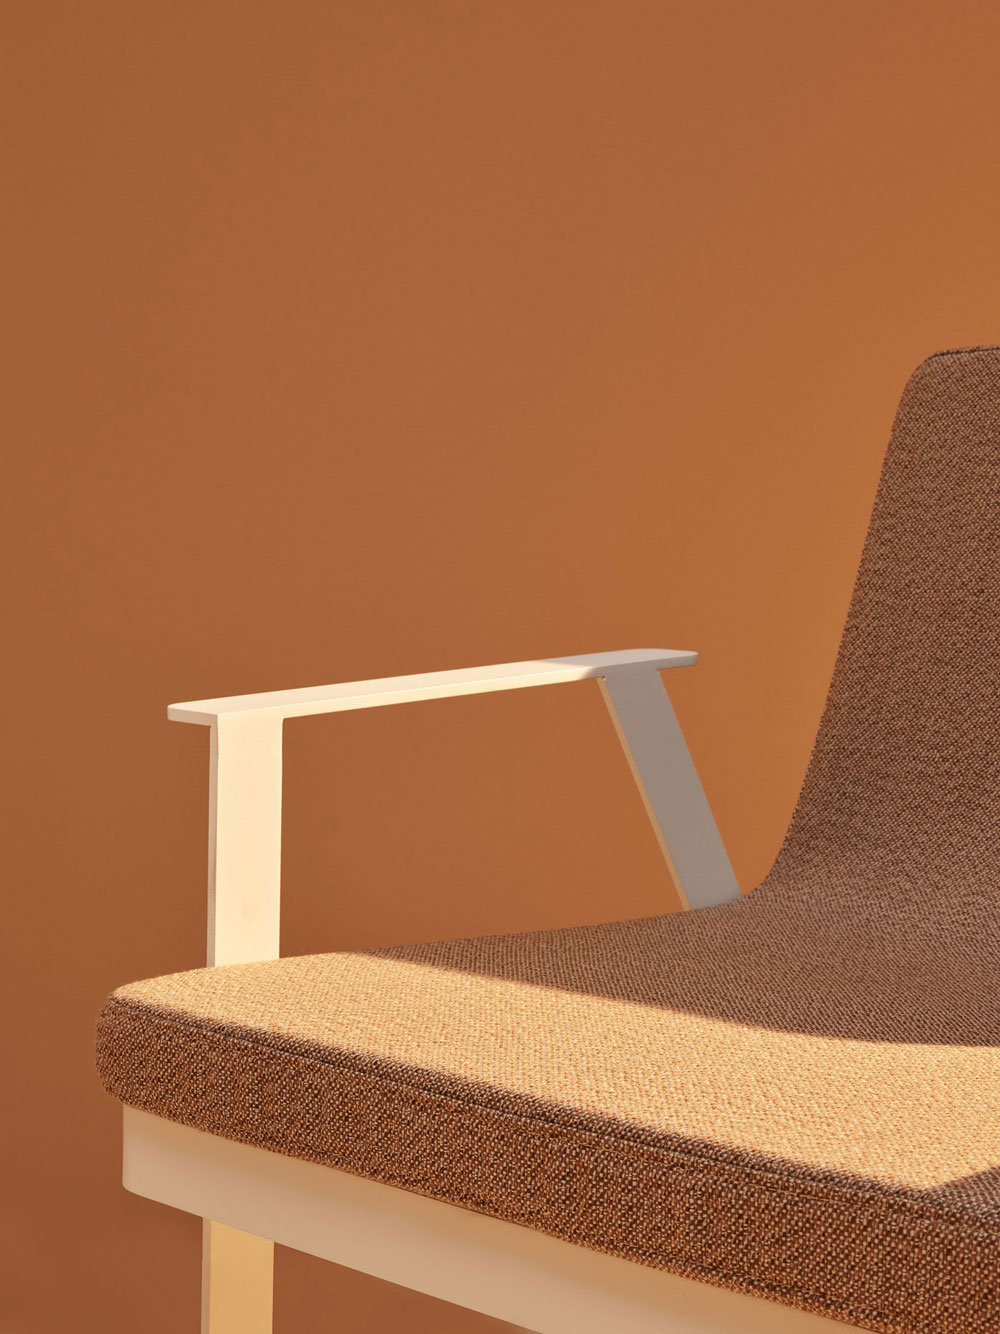 Makemake Lounge Set - Lounge Chair and Bench for outdoor environment